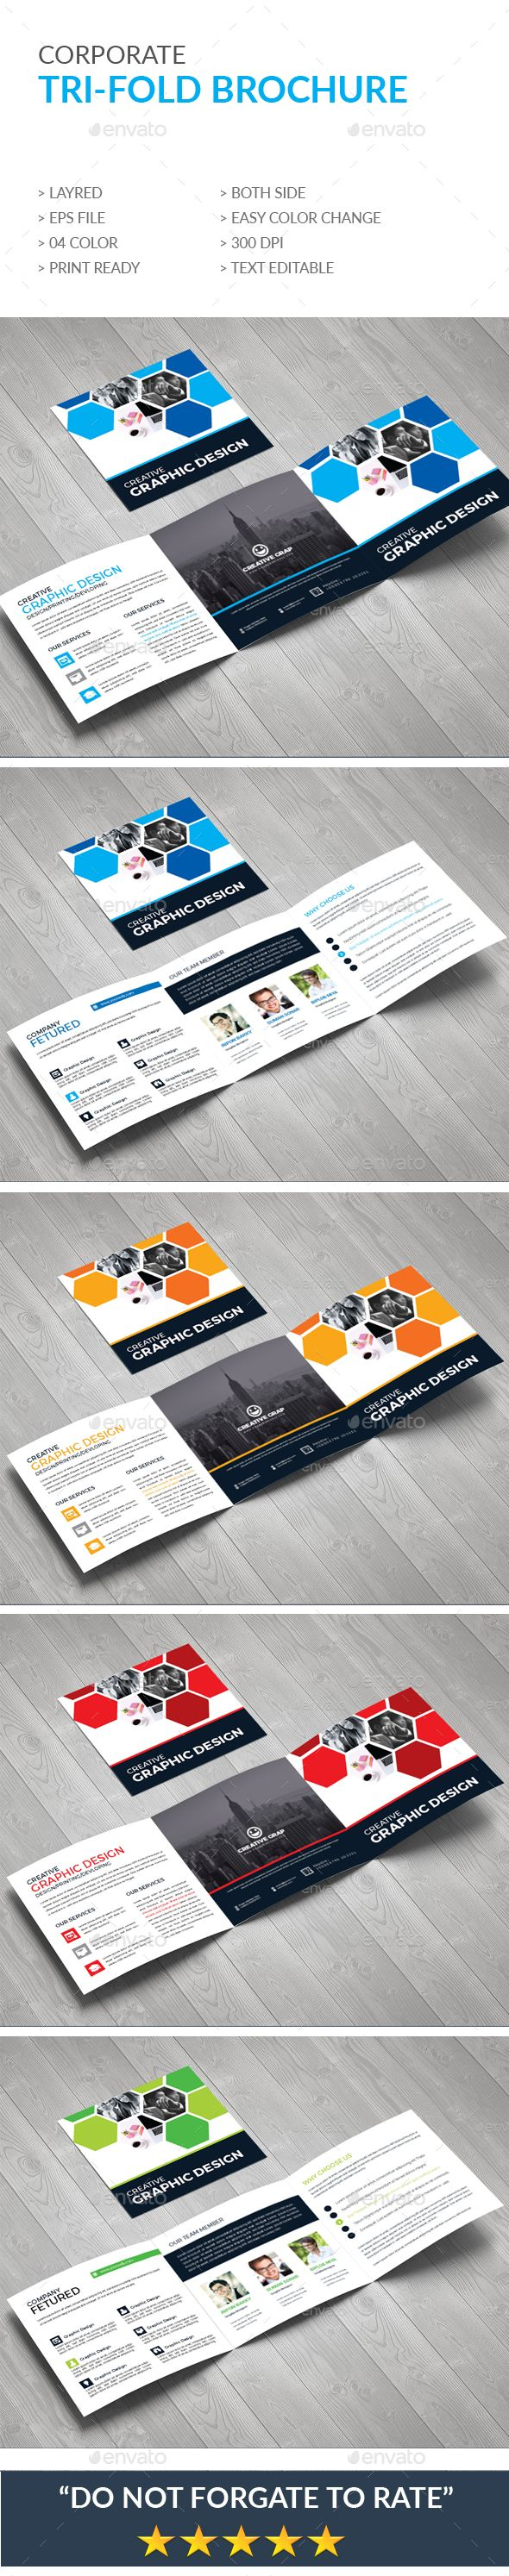 Trifold Brochure Template Vector EPS